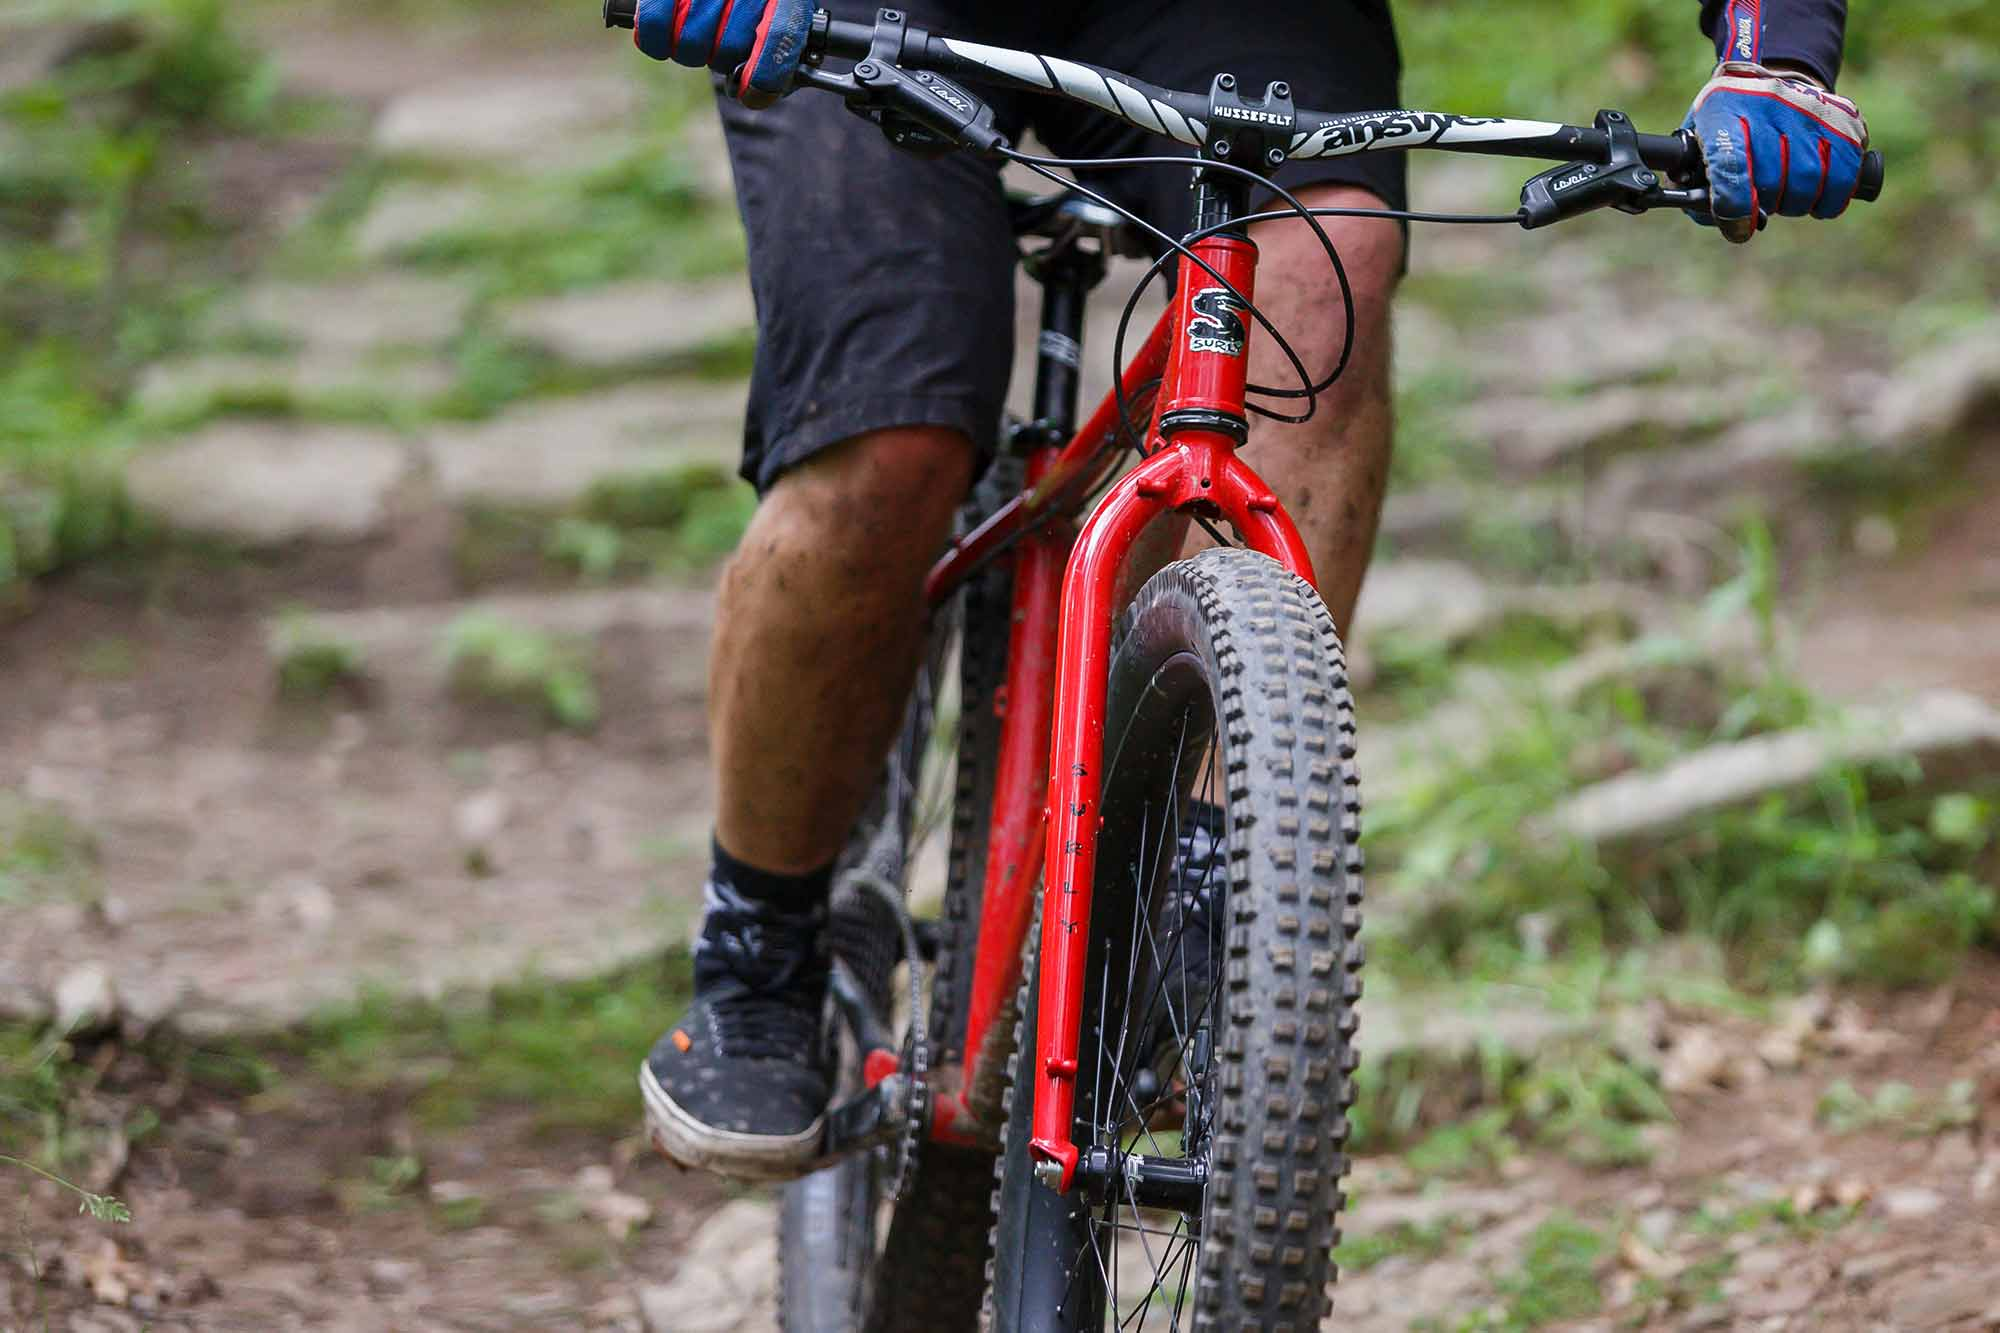 Mountain biker on rocky off-road trail riding red Surly Krampus showing large Surly Dirt Wizard tires on wide rims